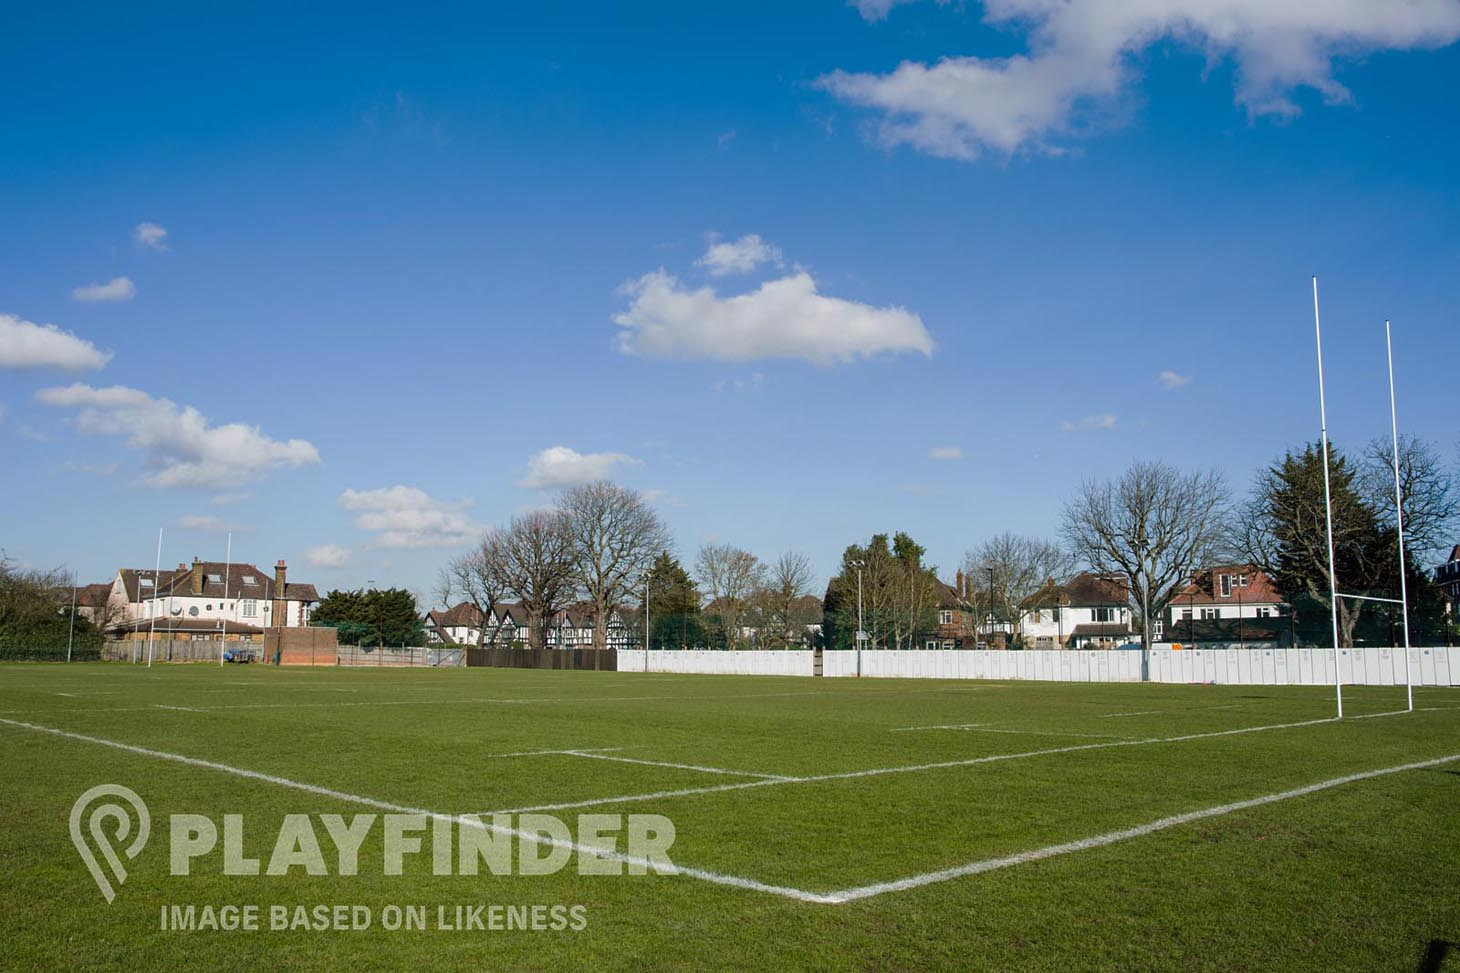 De La Salle Academy Training pitch | Grass rugby pitch